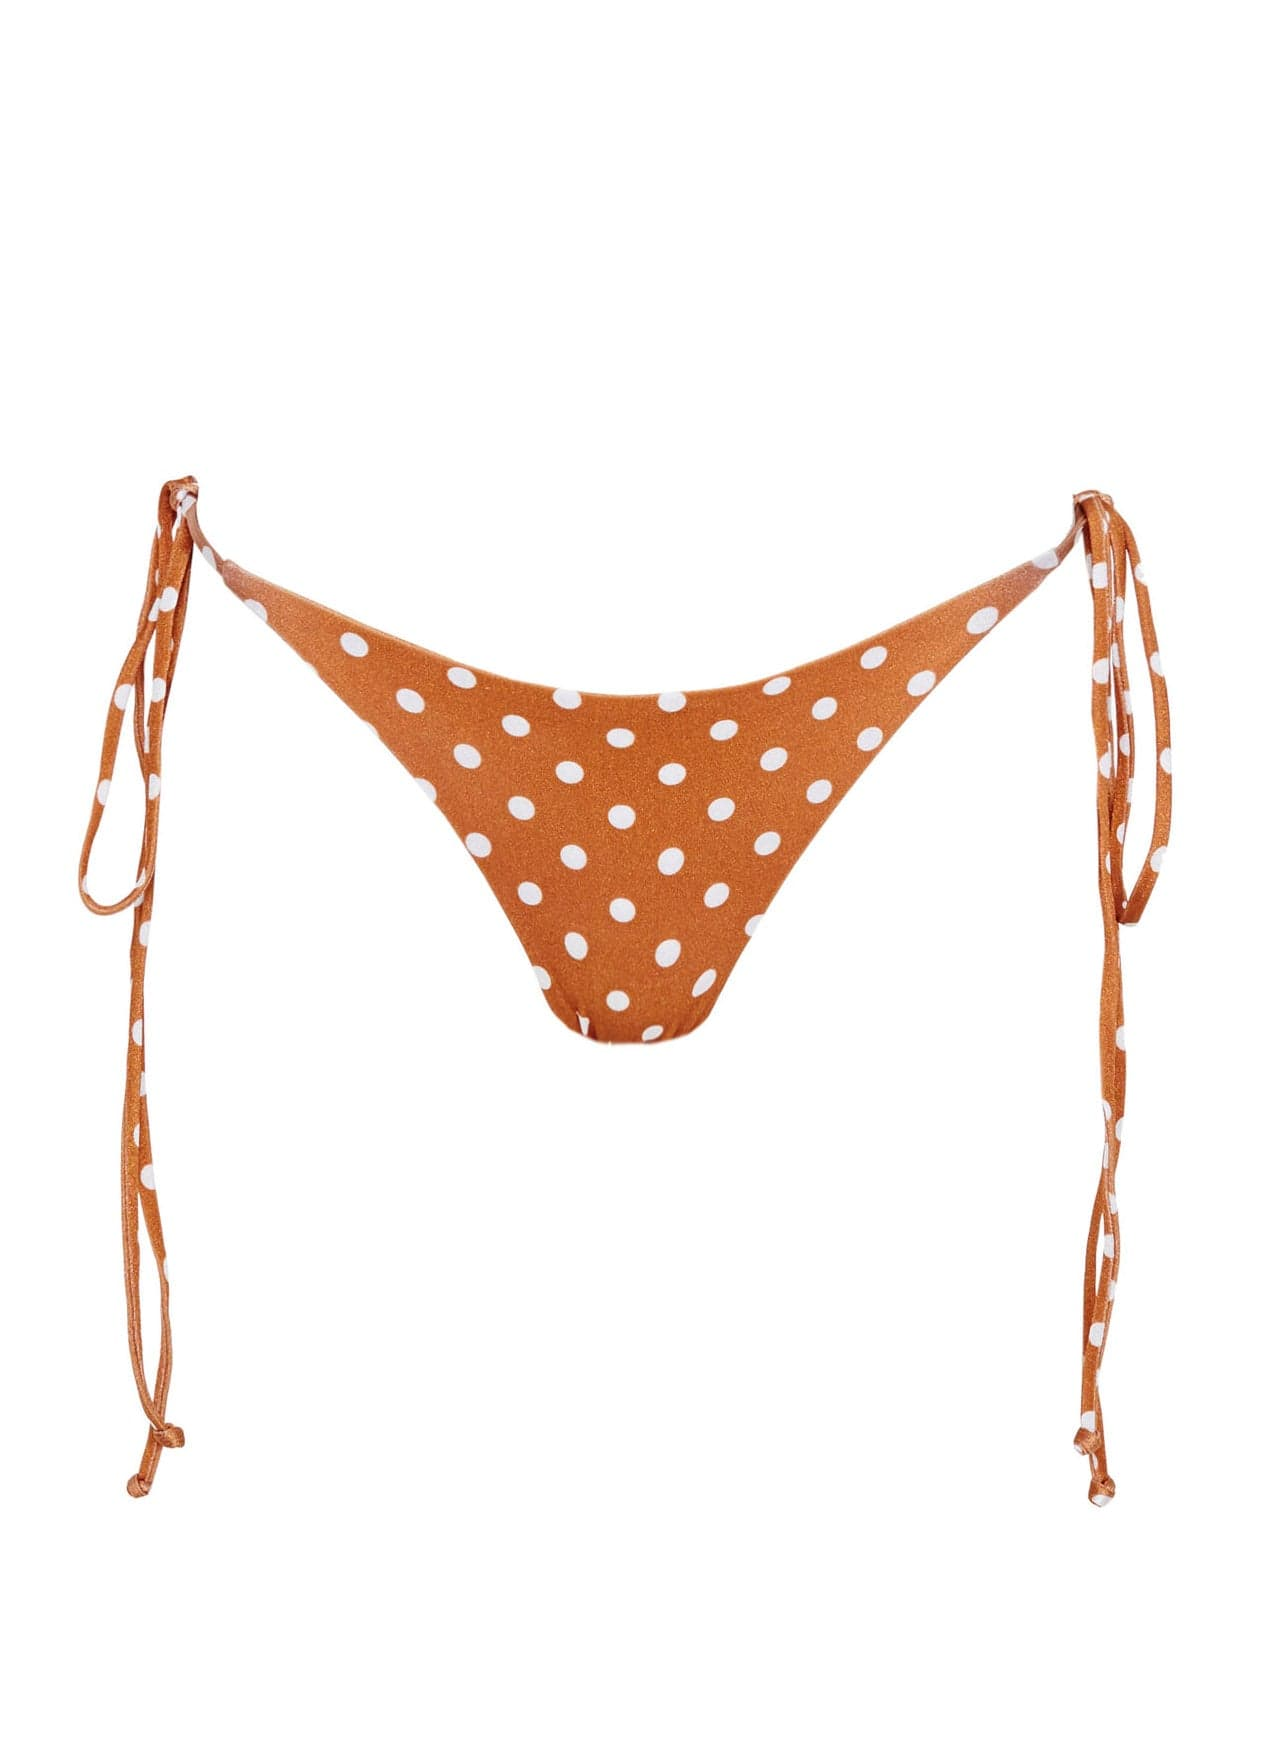 ES TRENC PRINT - CINNAMON - BREGJE BOTTOM - FINAL SALE